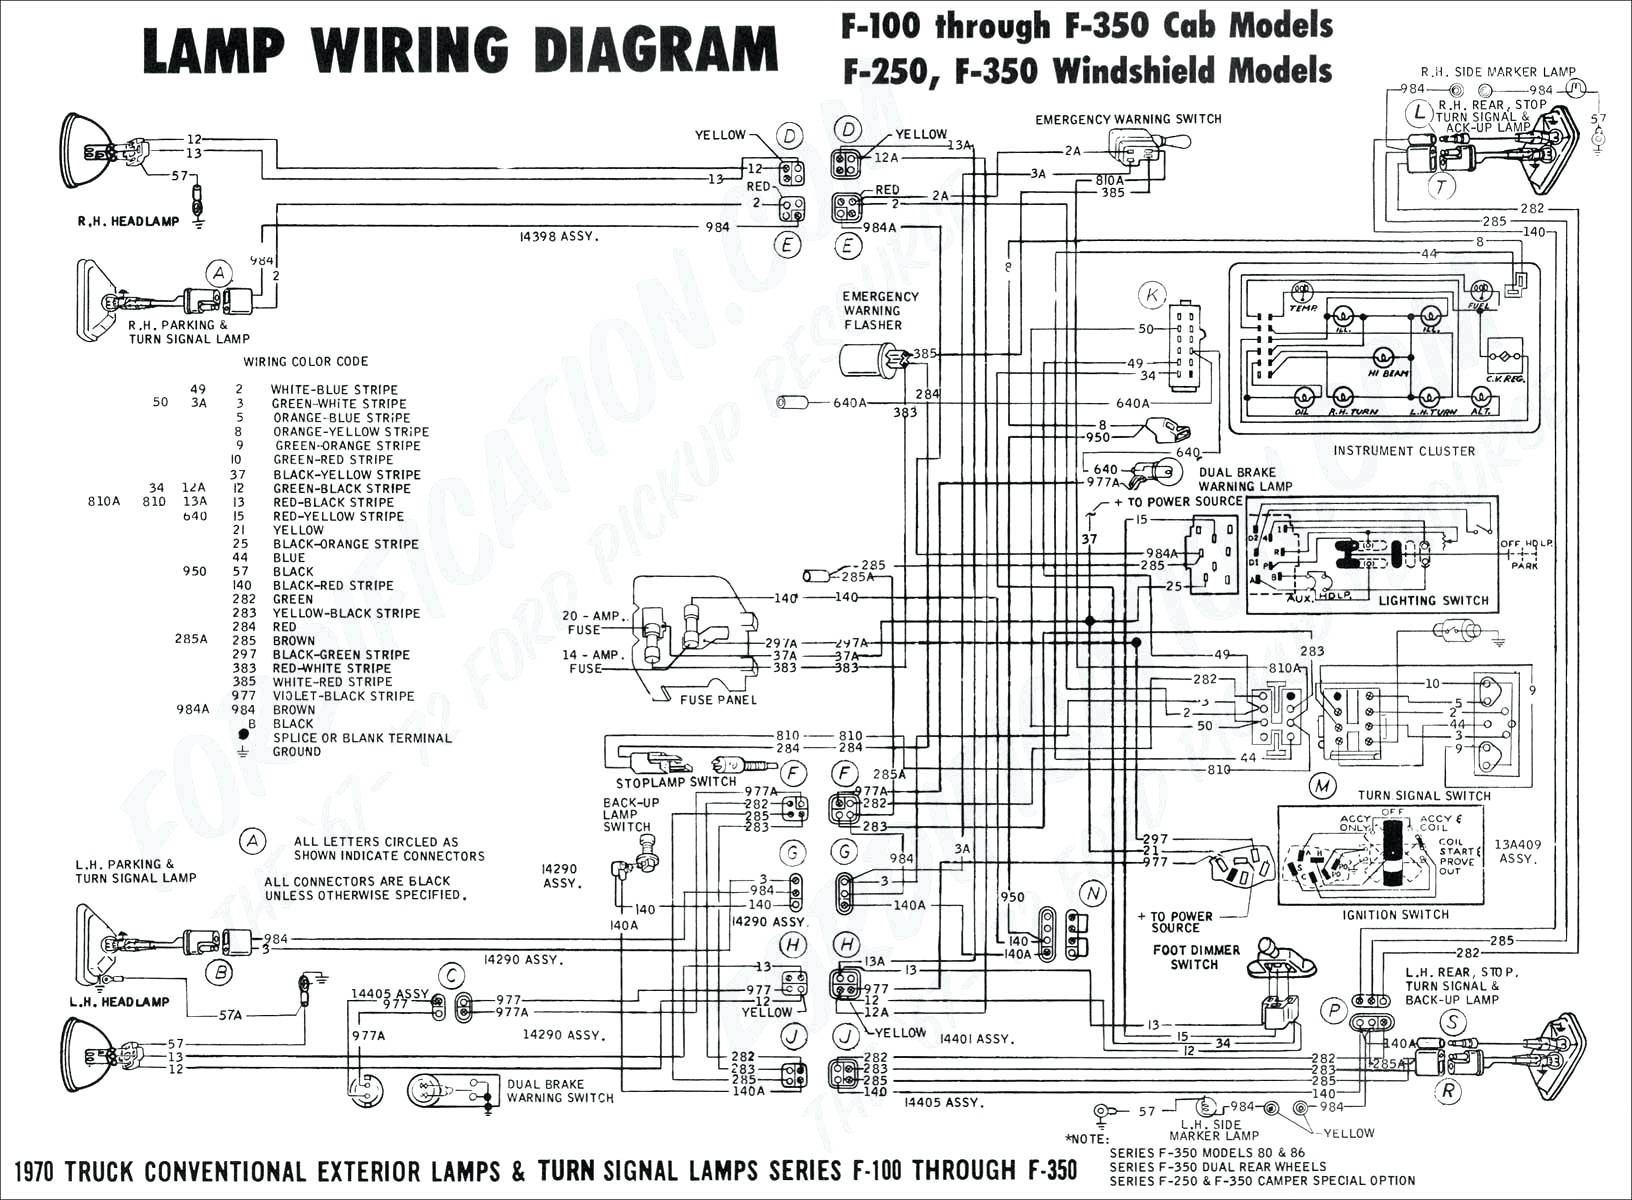 2000 mitsubishi eclipse gt radio wiring diagram digestive system no labels 1999 stereo library